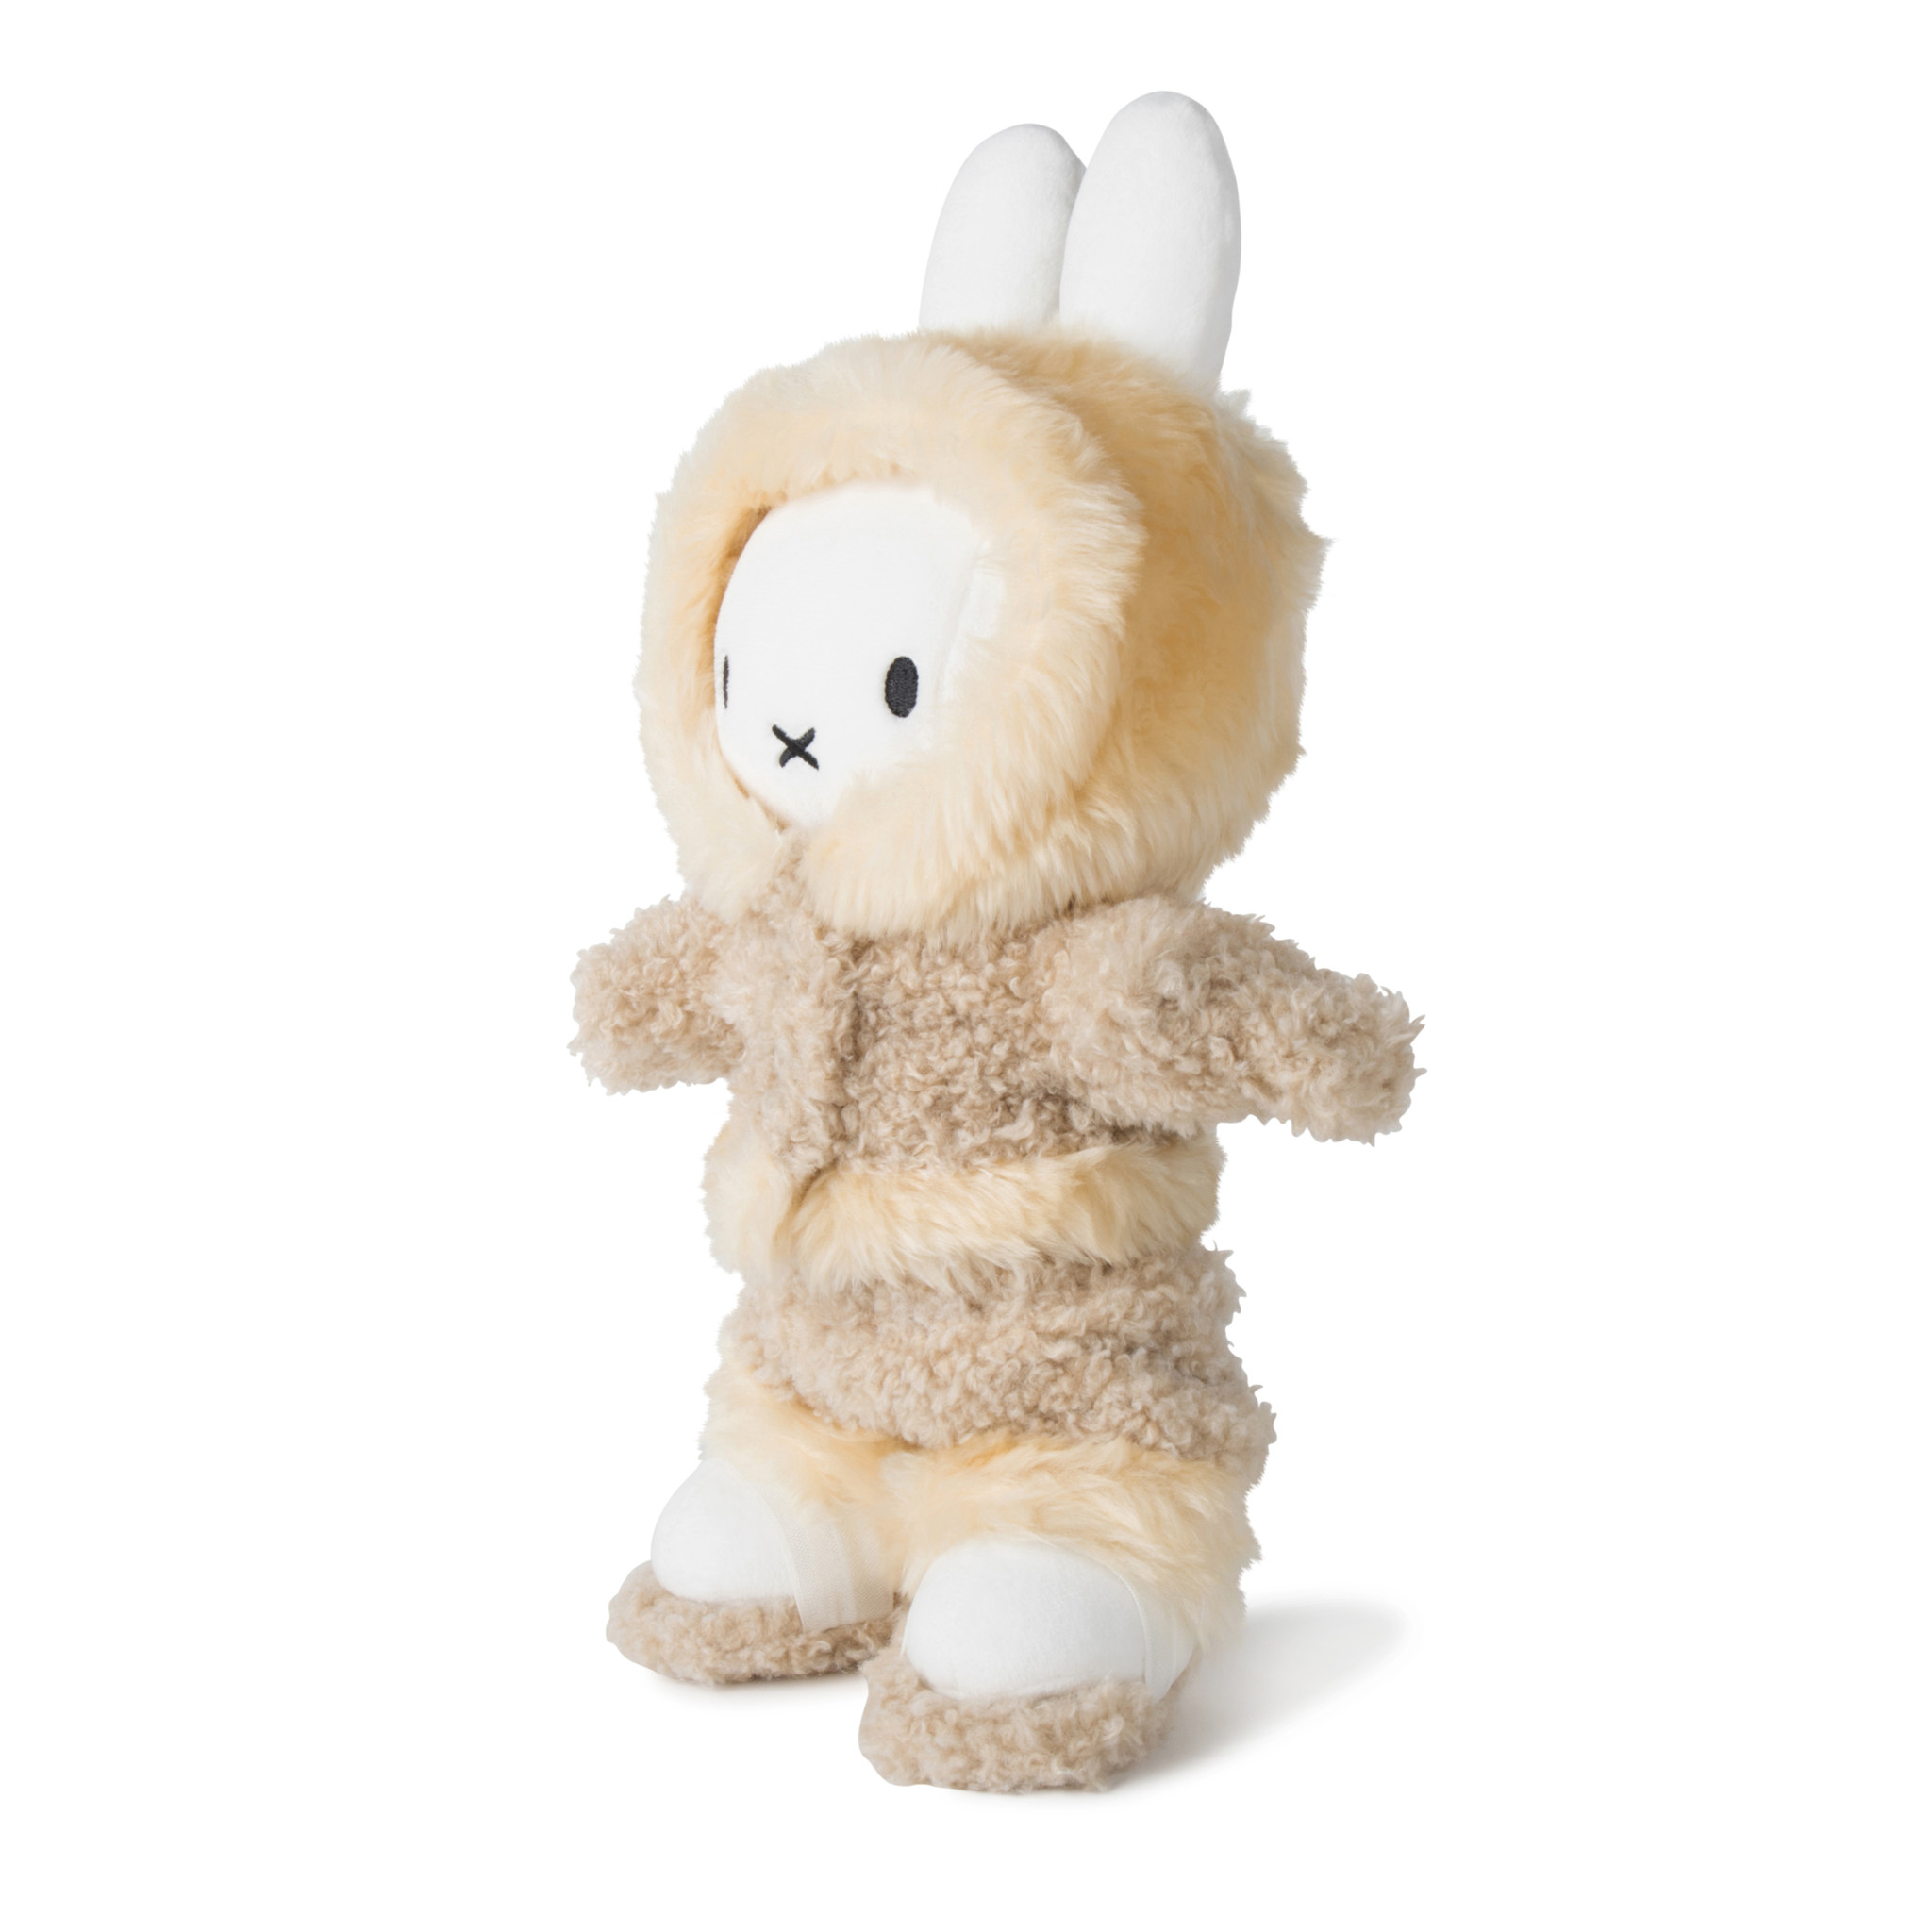 Limited edition Miffy cuddly toy 'Explorer'